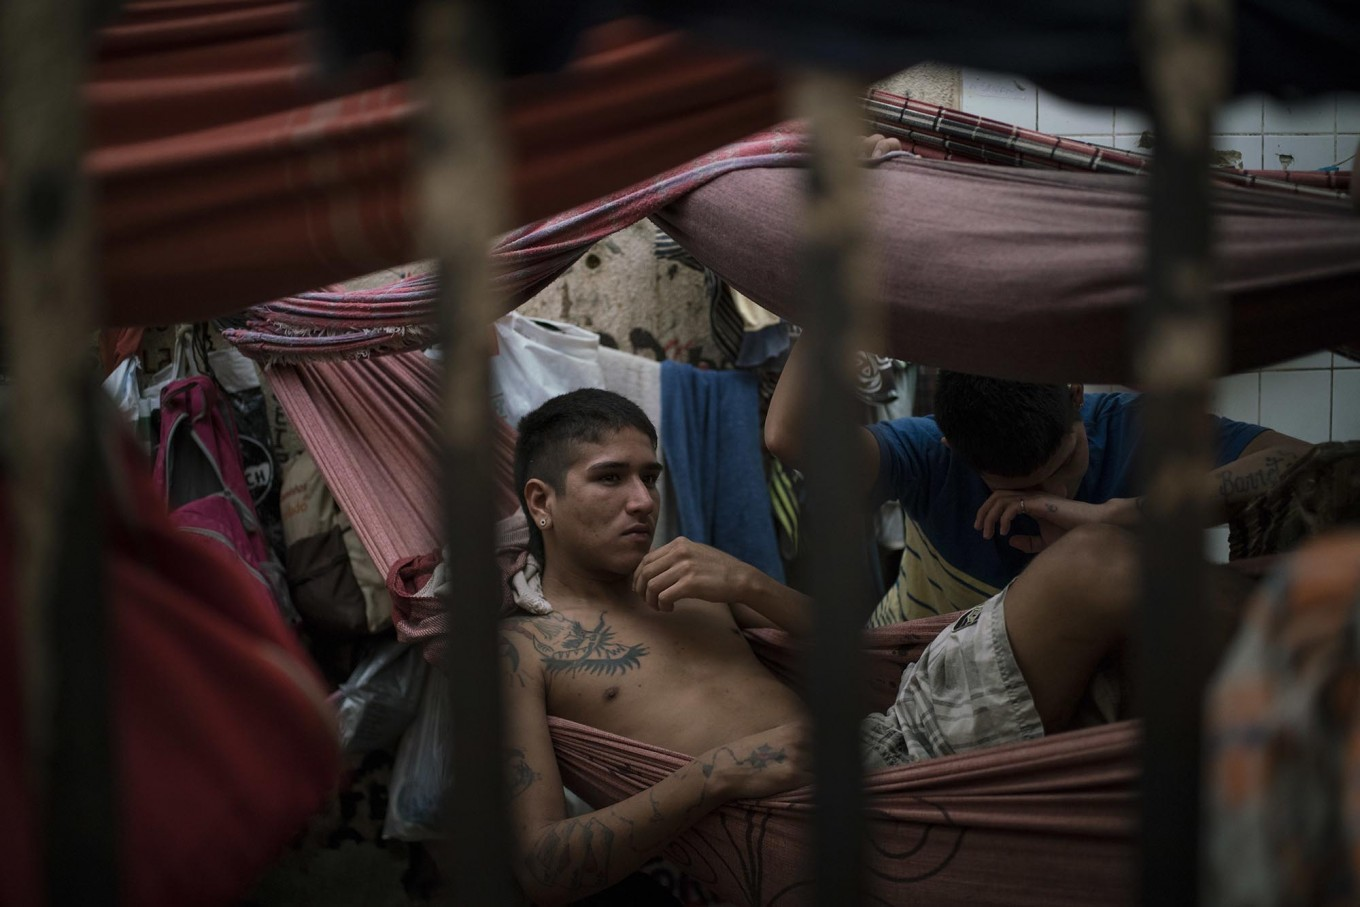 In this Feb. 6, 2017 photo, detainees rest in hammocks inside an overcrowded cell at a police station near Manaus, Brazil. All 24 inmates at the station said they were linked to the Family of the North gang, but guards said that could be just a defensive move after a slaughter at the city's main jail, Complexo Penitenciario Anisio Jobim. AP Photo/Felipe Dana